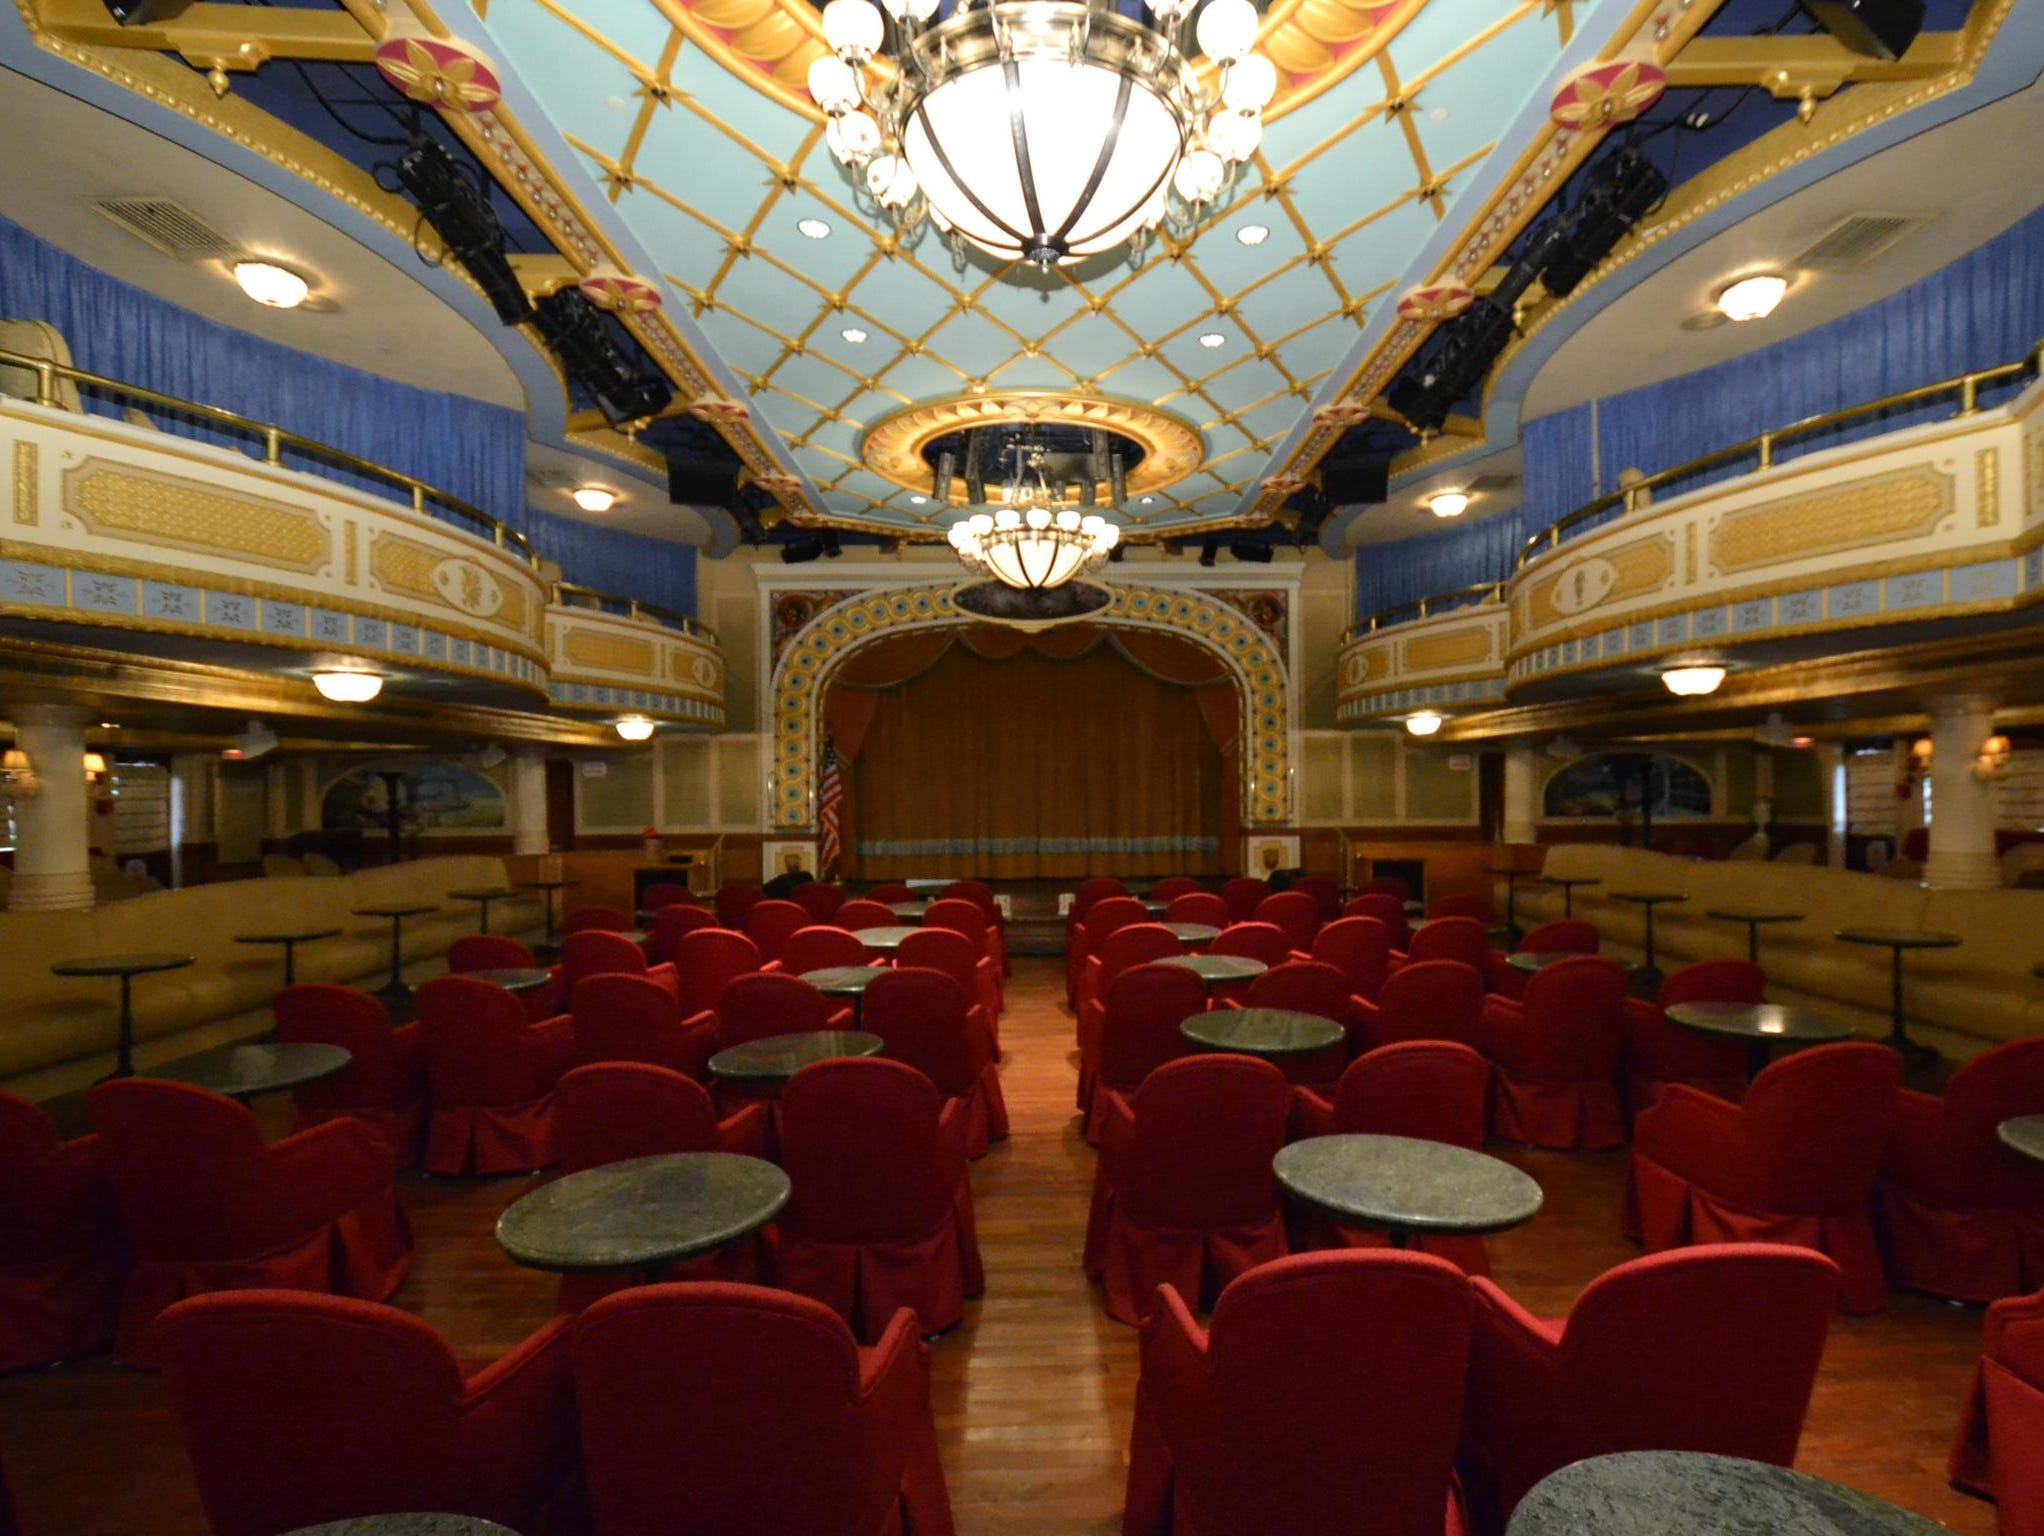 Inspired by the greatest steamboats of the 19th century, the American Queen's two-level Grand Saloon offers nightly entertainment that ranges from Broadway musicals to Dixieland Jazz to showboat-style cabaret.